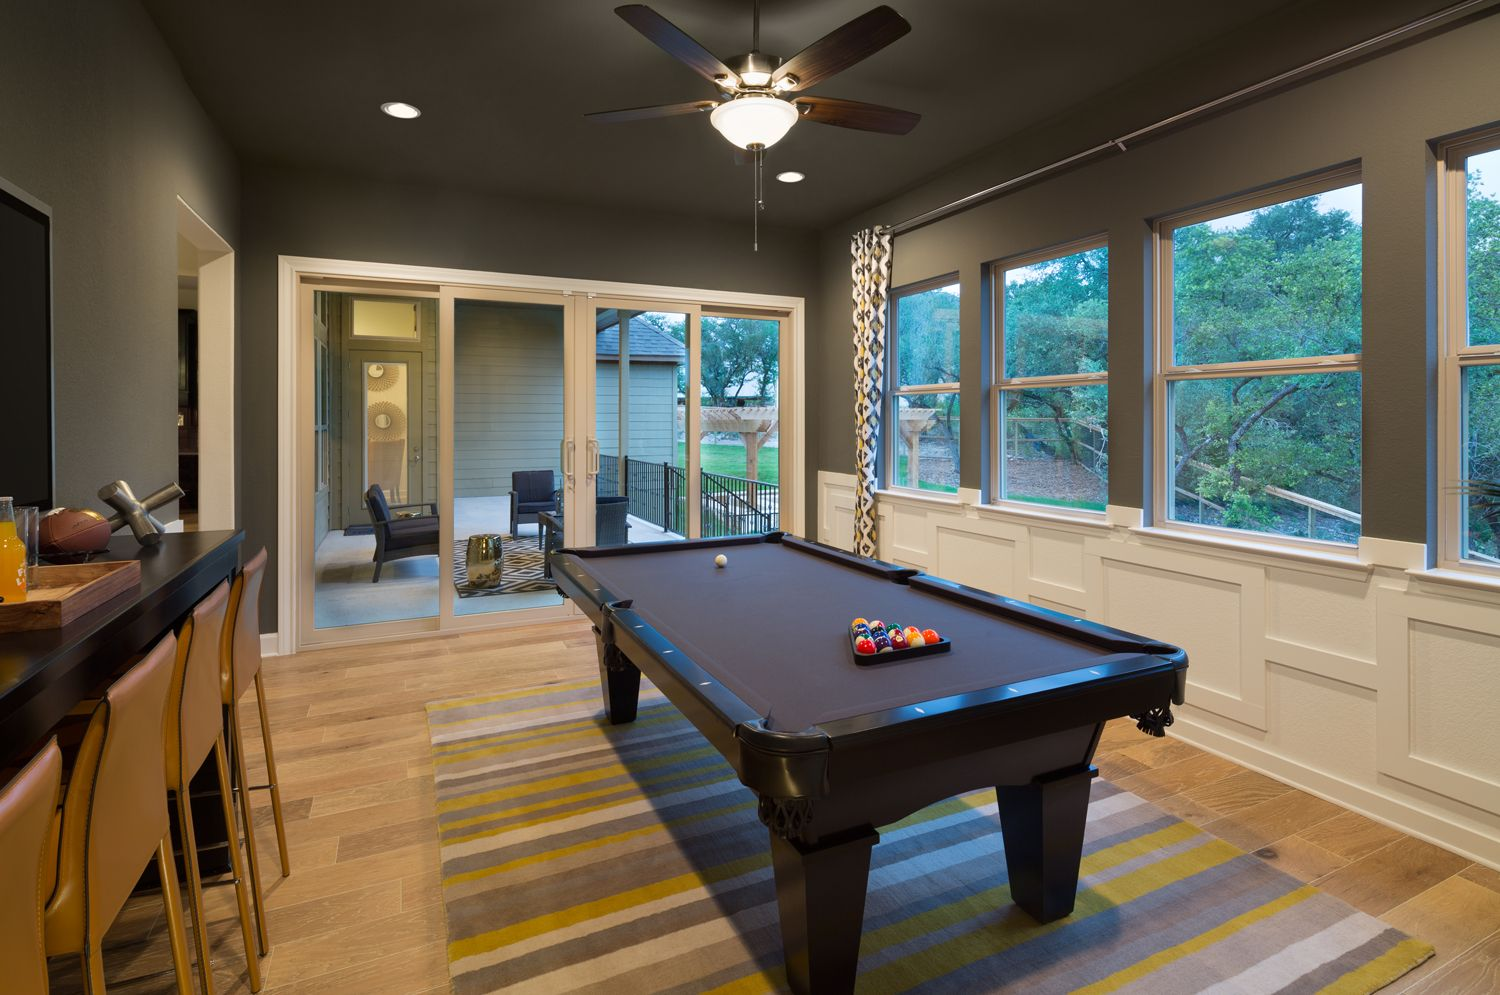 Game Room with large sliding glass doors to outdoor living